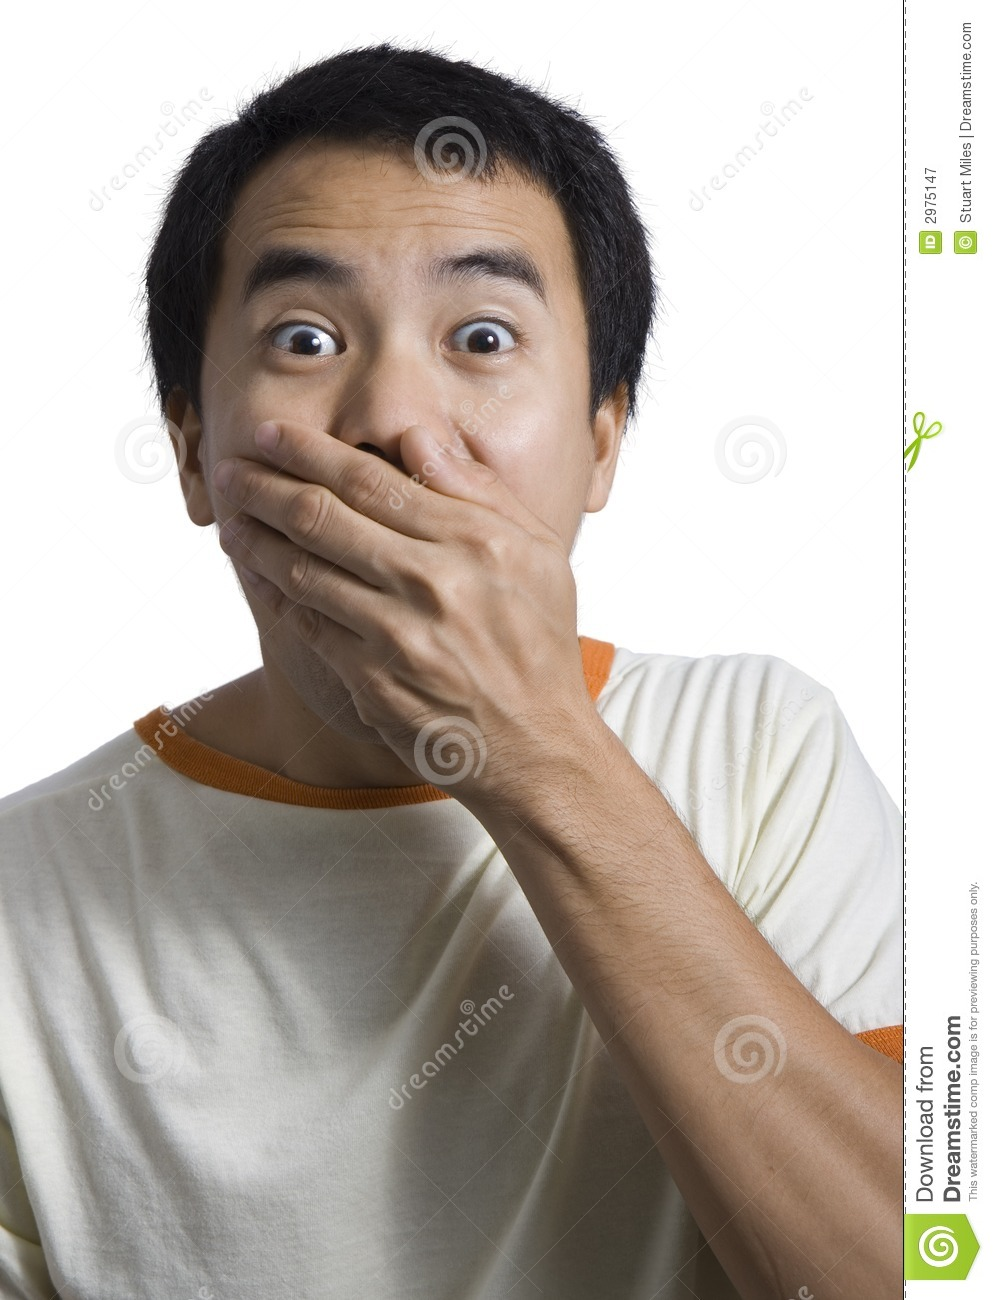 Man Covering Mouth 70